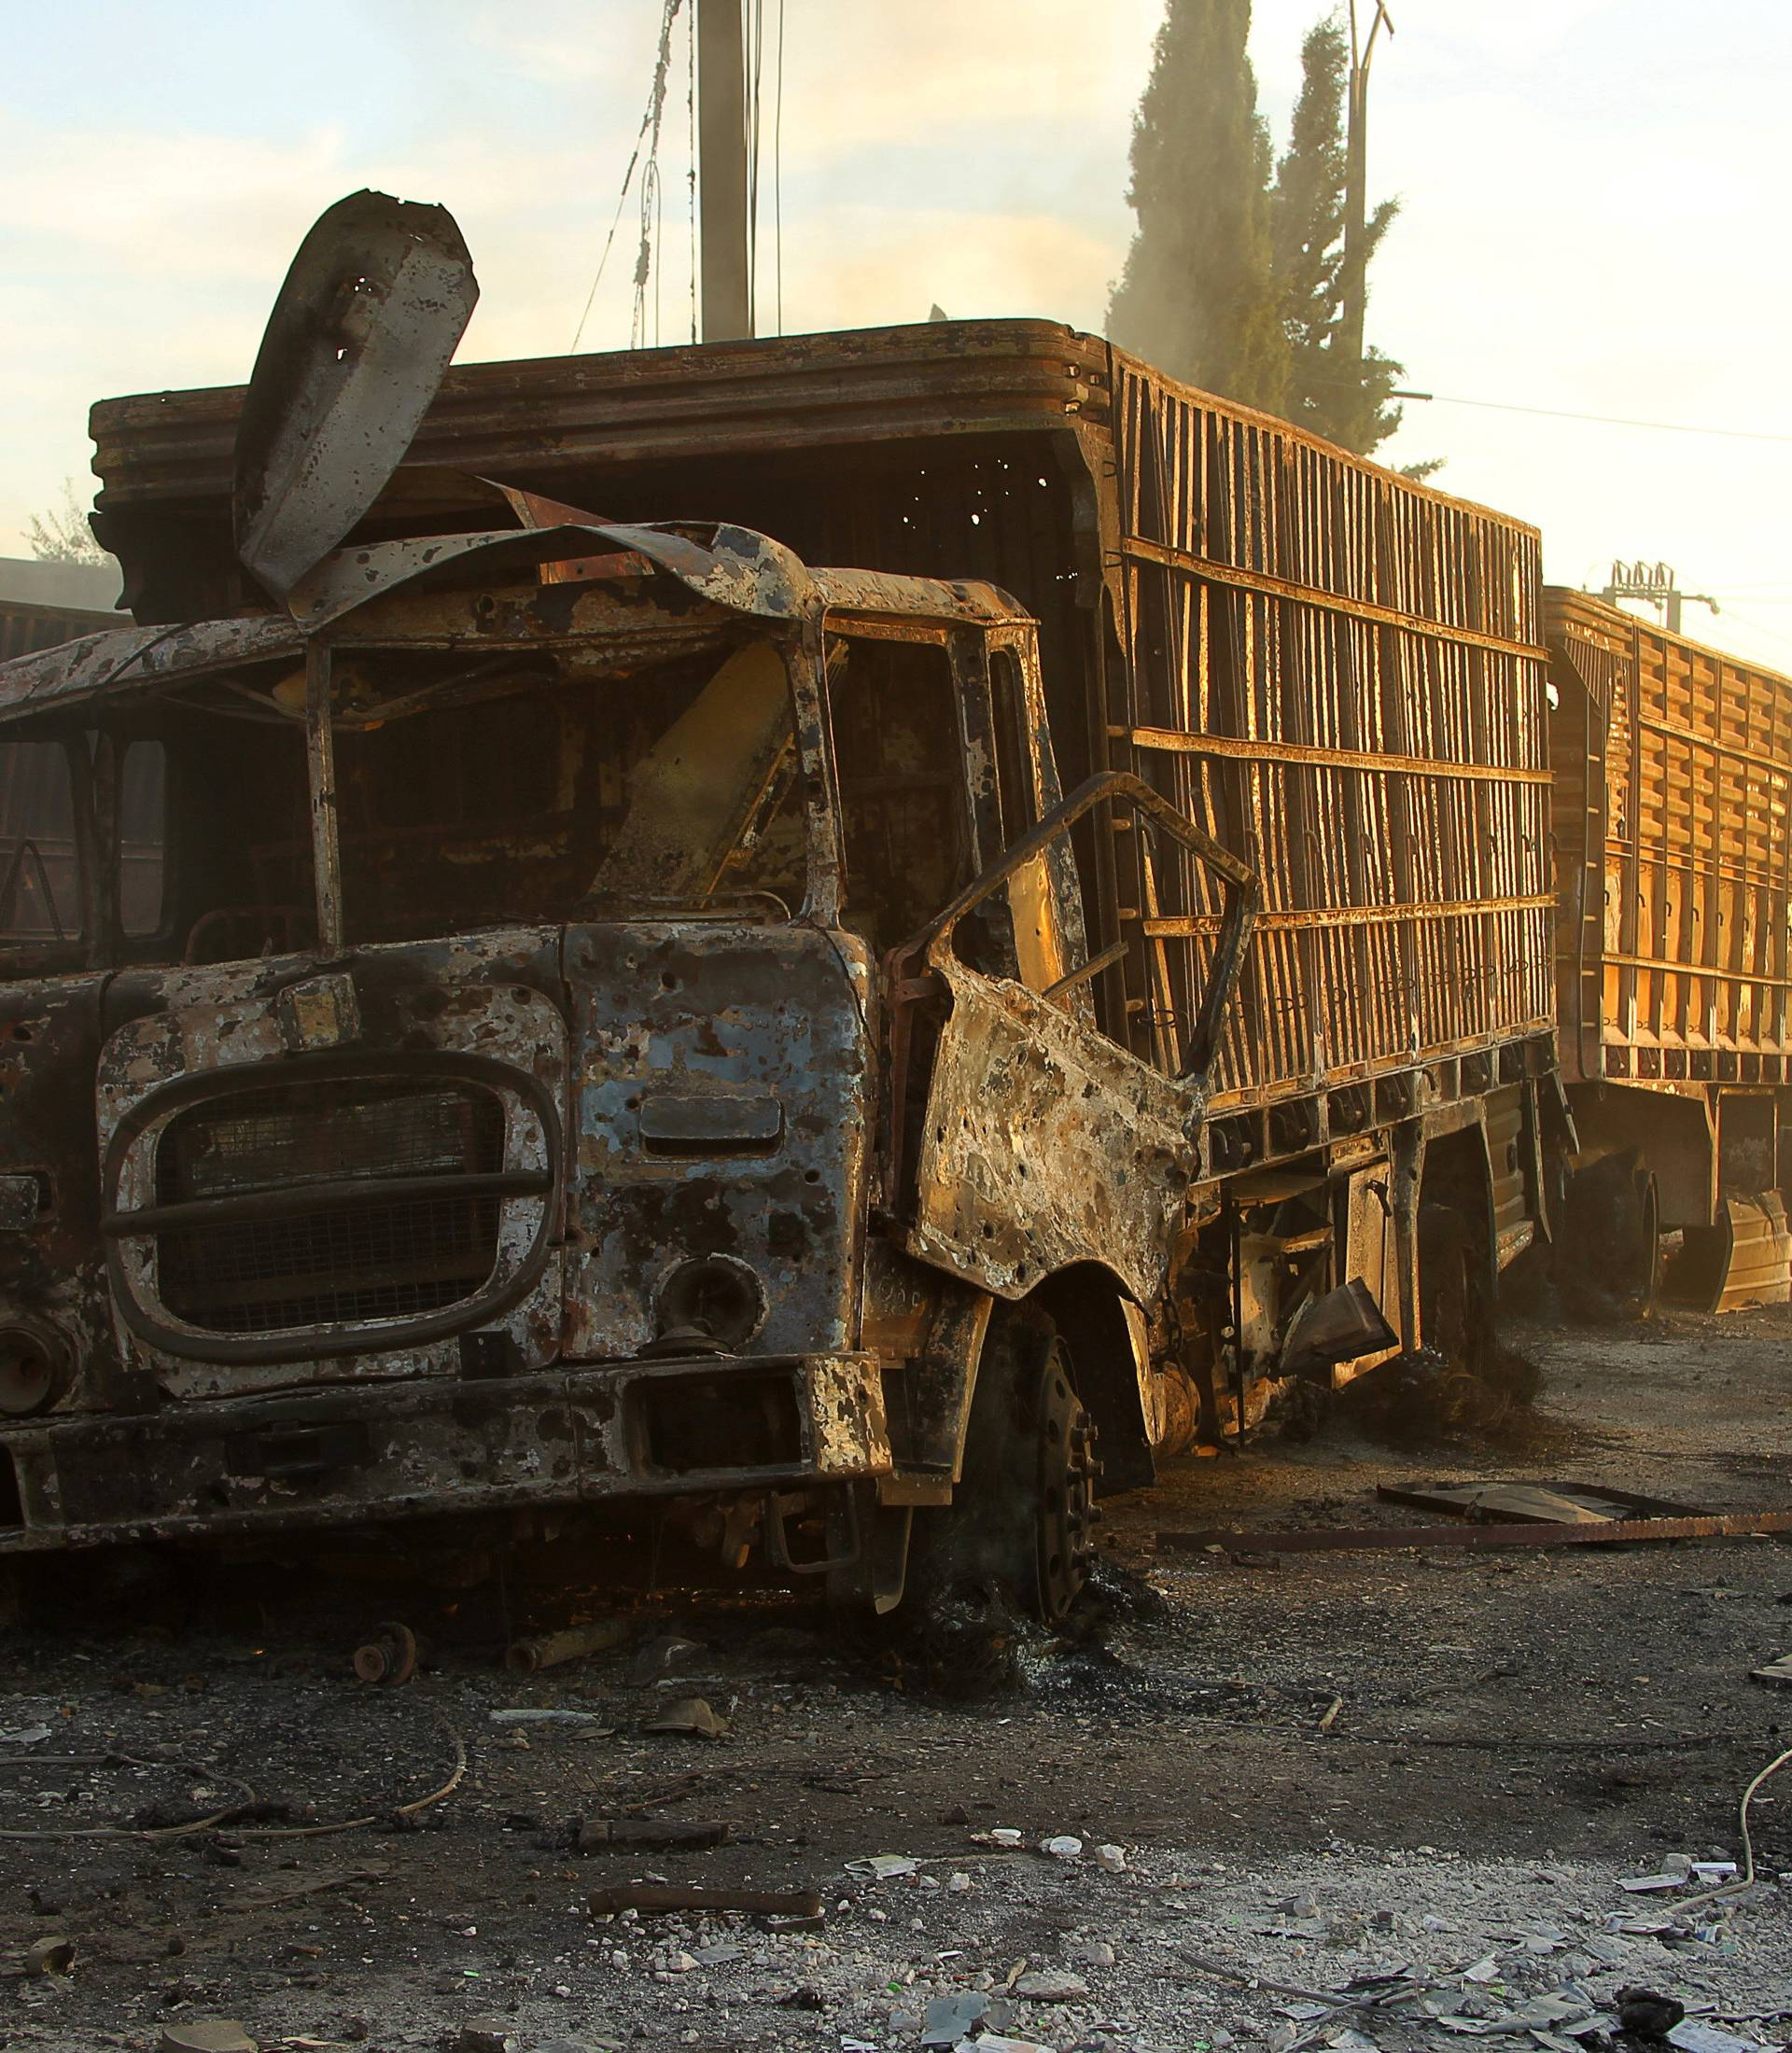 Damaged aid trucks are pictured after an airstrike on the rebel held Urm al-Kubra town